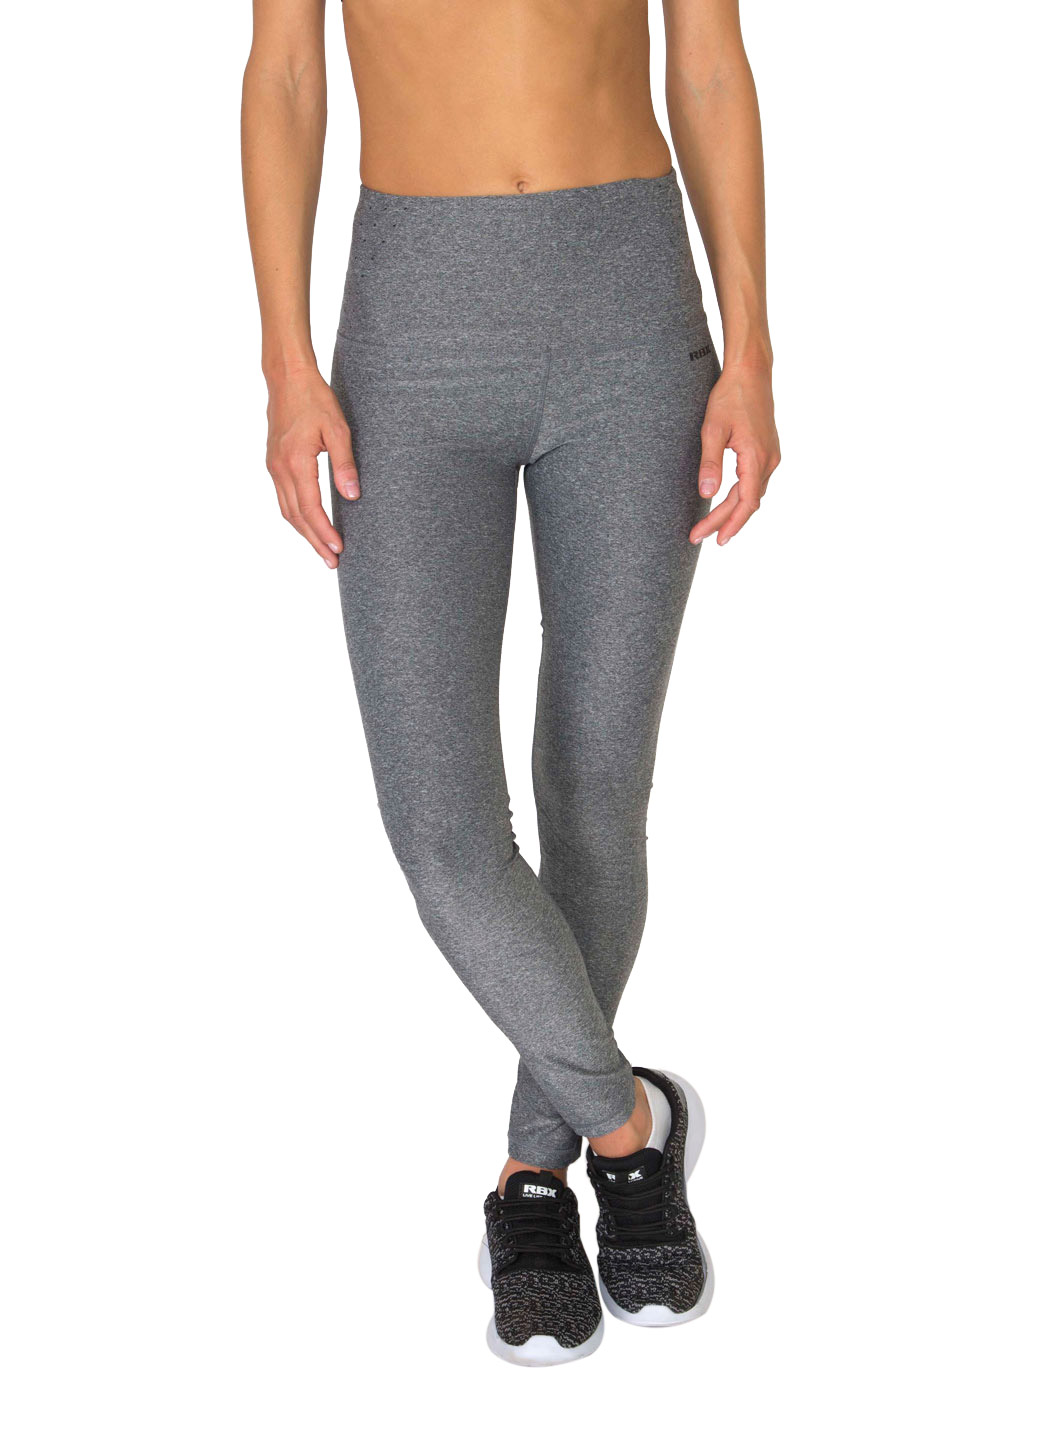 RBX Active Prime Body Contouring High Waisted Compression Performance Leggings